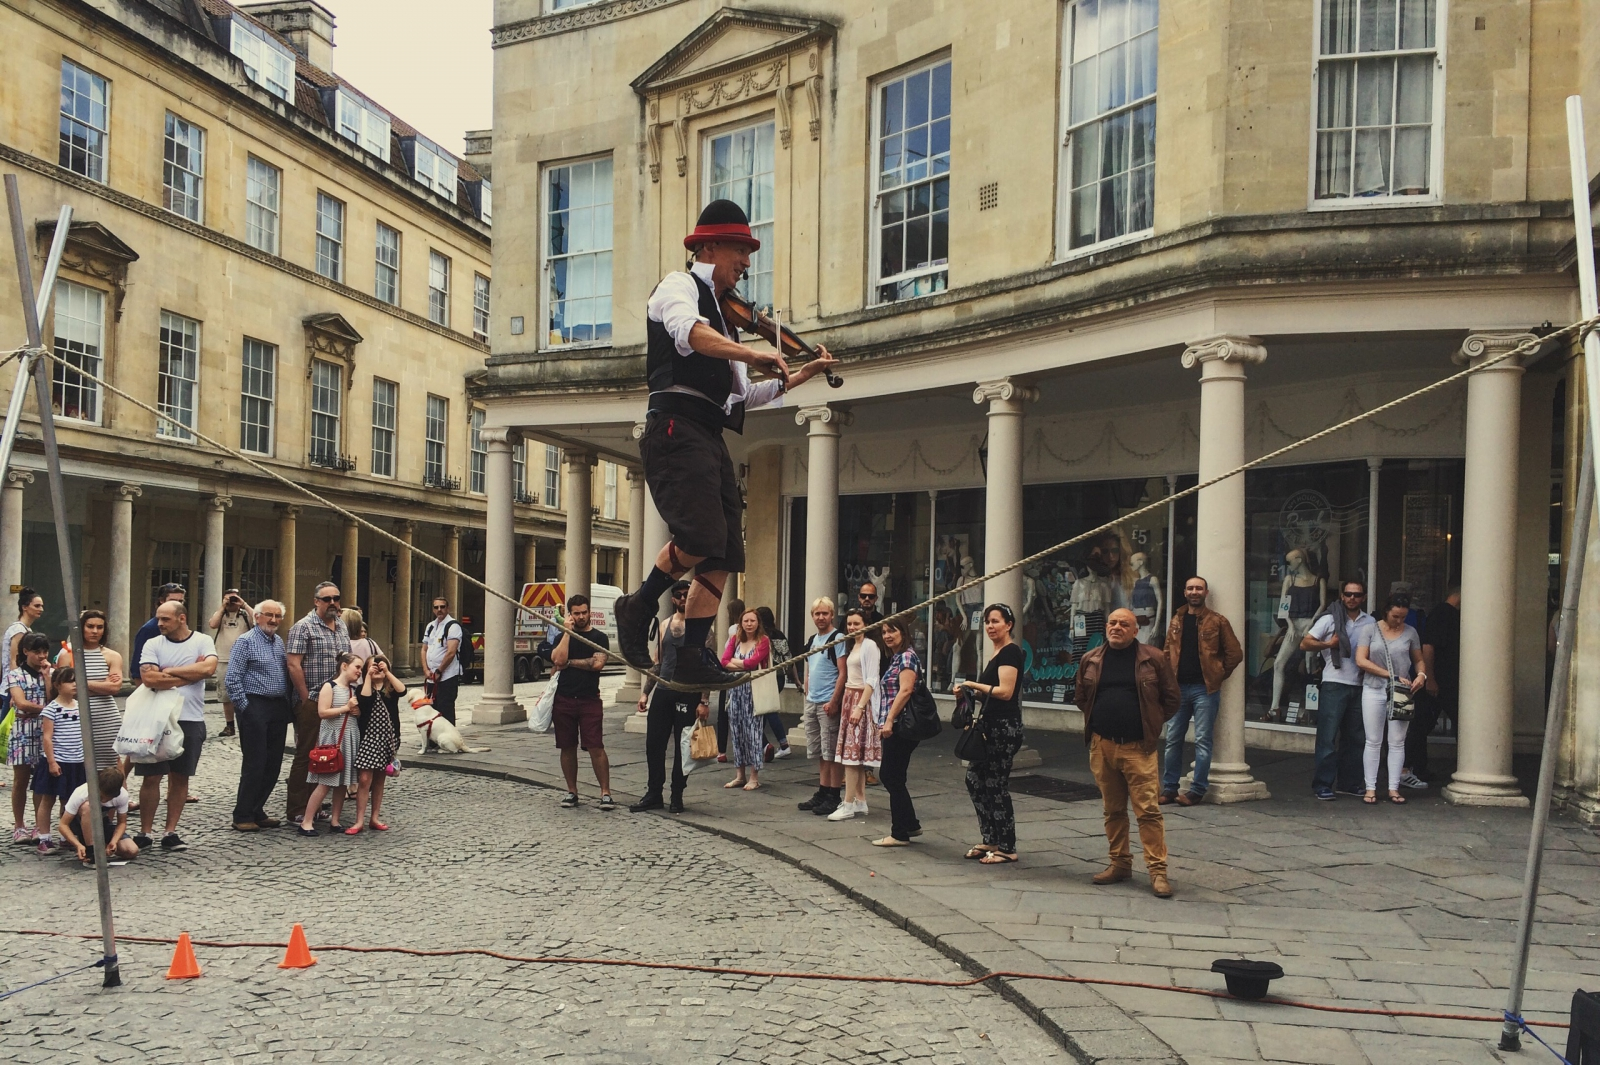 Street performer in Bath, England